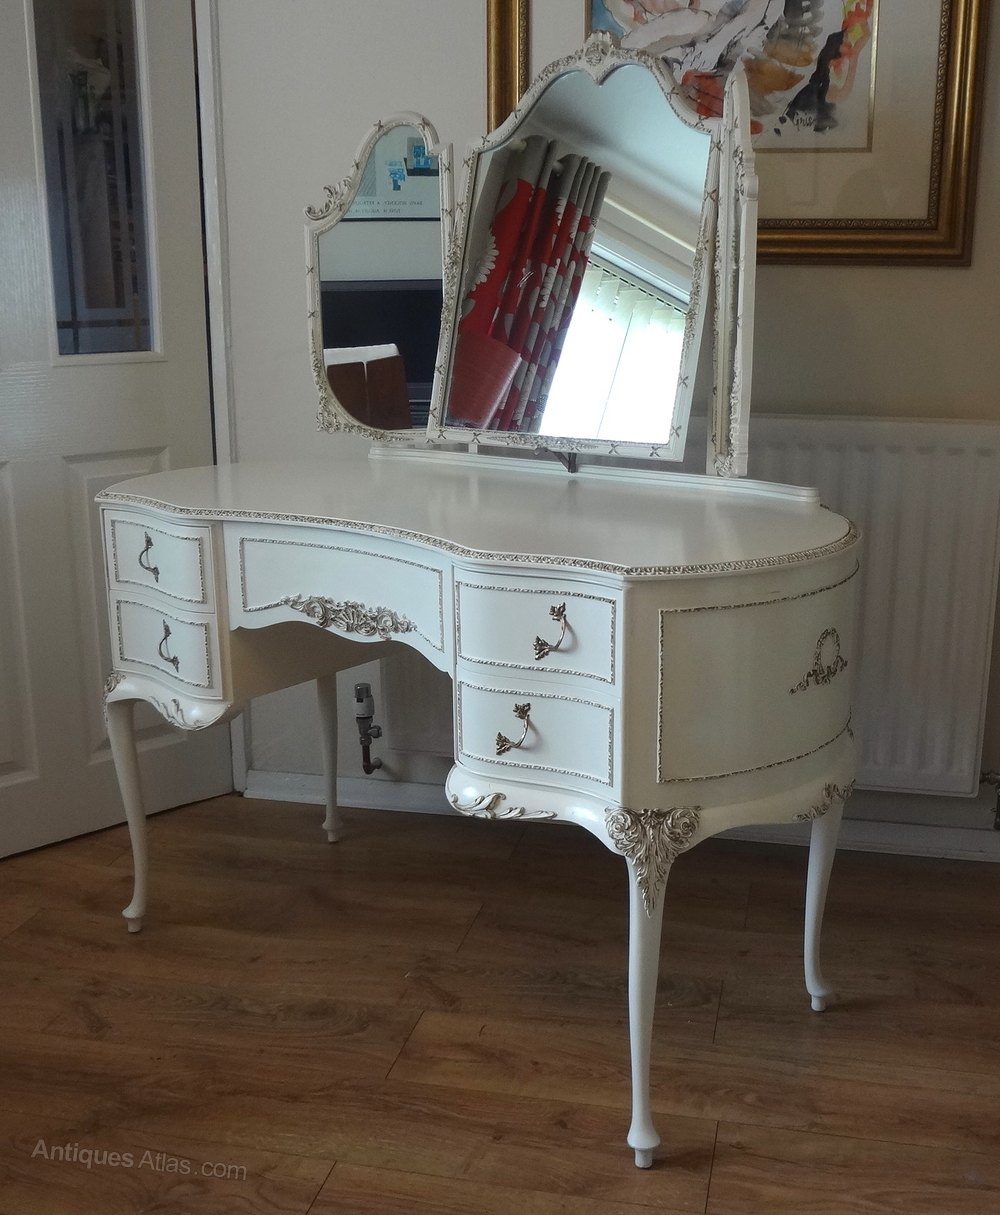 Antiques atlas louis dressing table - Olympus Louis Dressing Table Midcentury Retro And Vintage Dressing Tables Alt5 Alt6